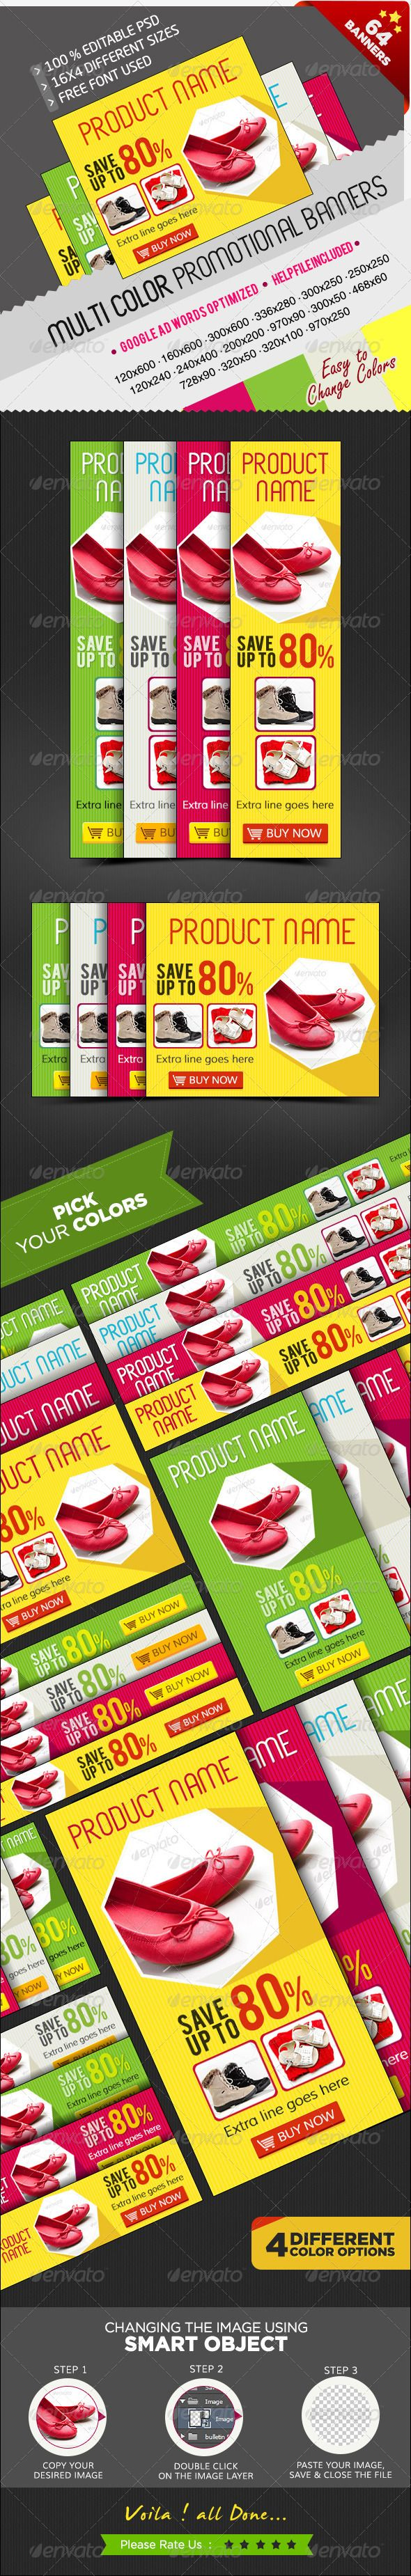 Promotional Web Banners in Multi Colours Template PSD | Buy and Download: http://graphicriver.net/item/promotional-banners-in-multi-colours-64-psds/7354648?WT.ac=category_thumb&WT.z_author=BannerDesignCo&ref=ksioks